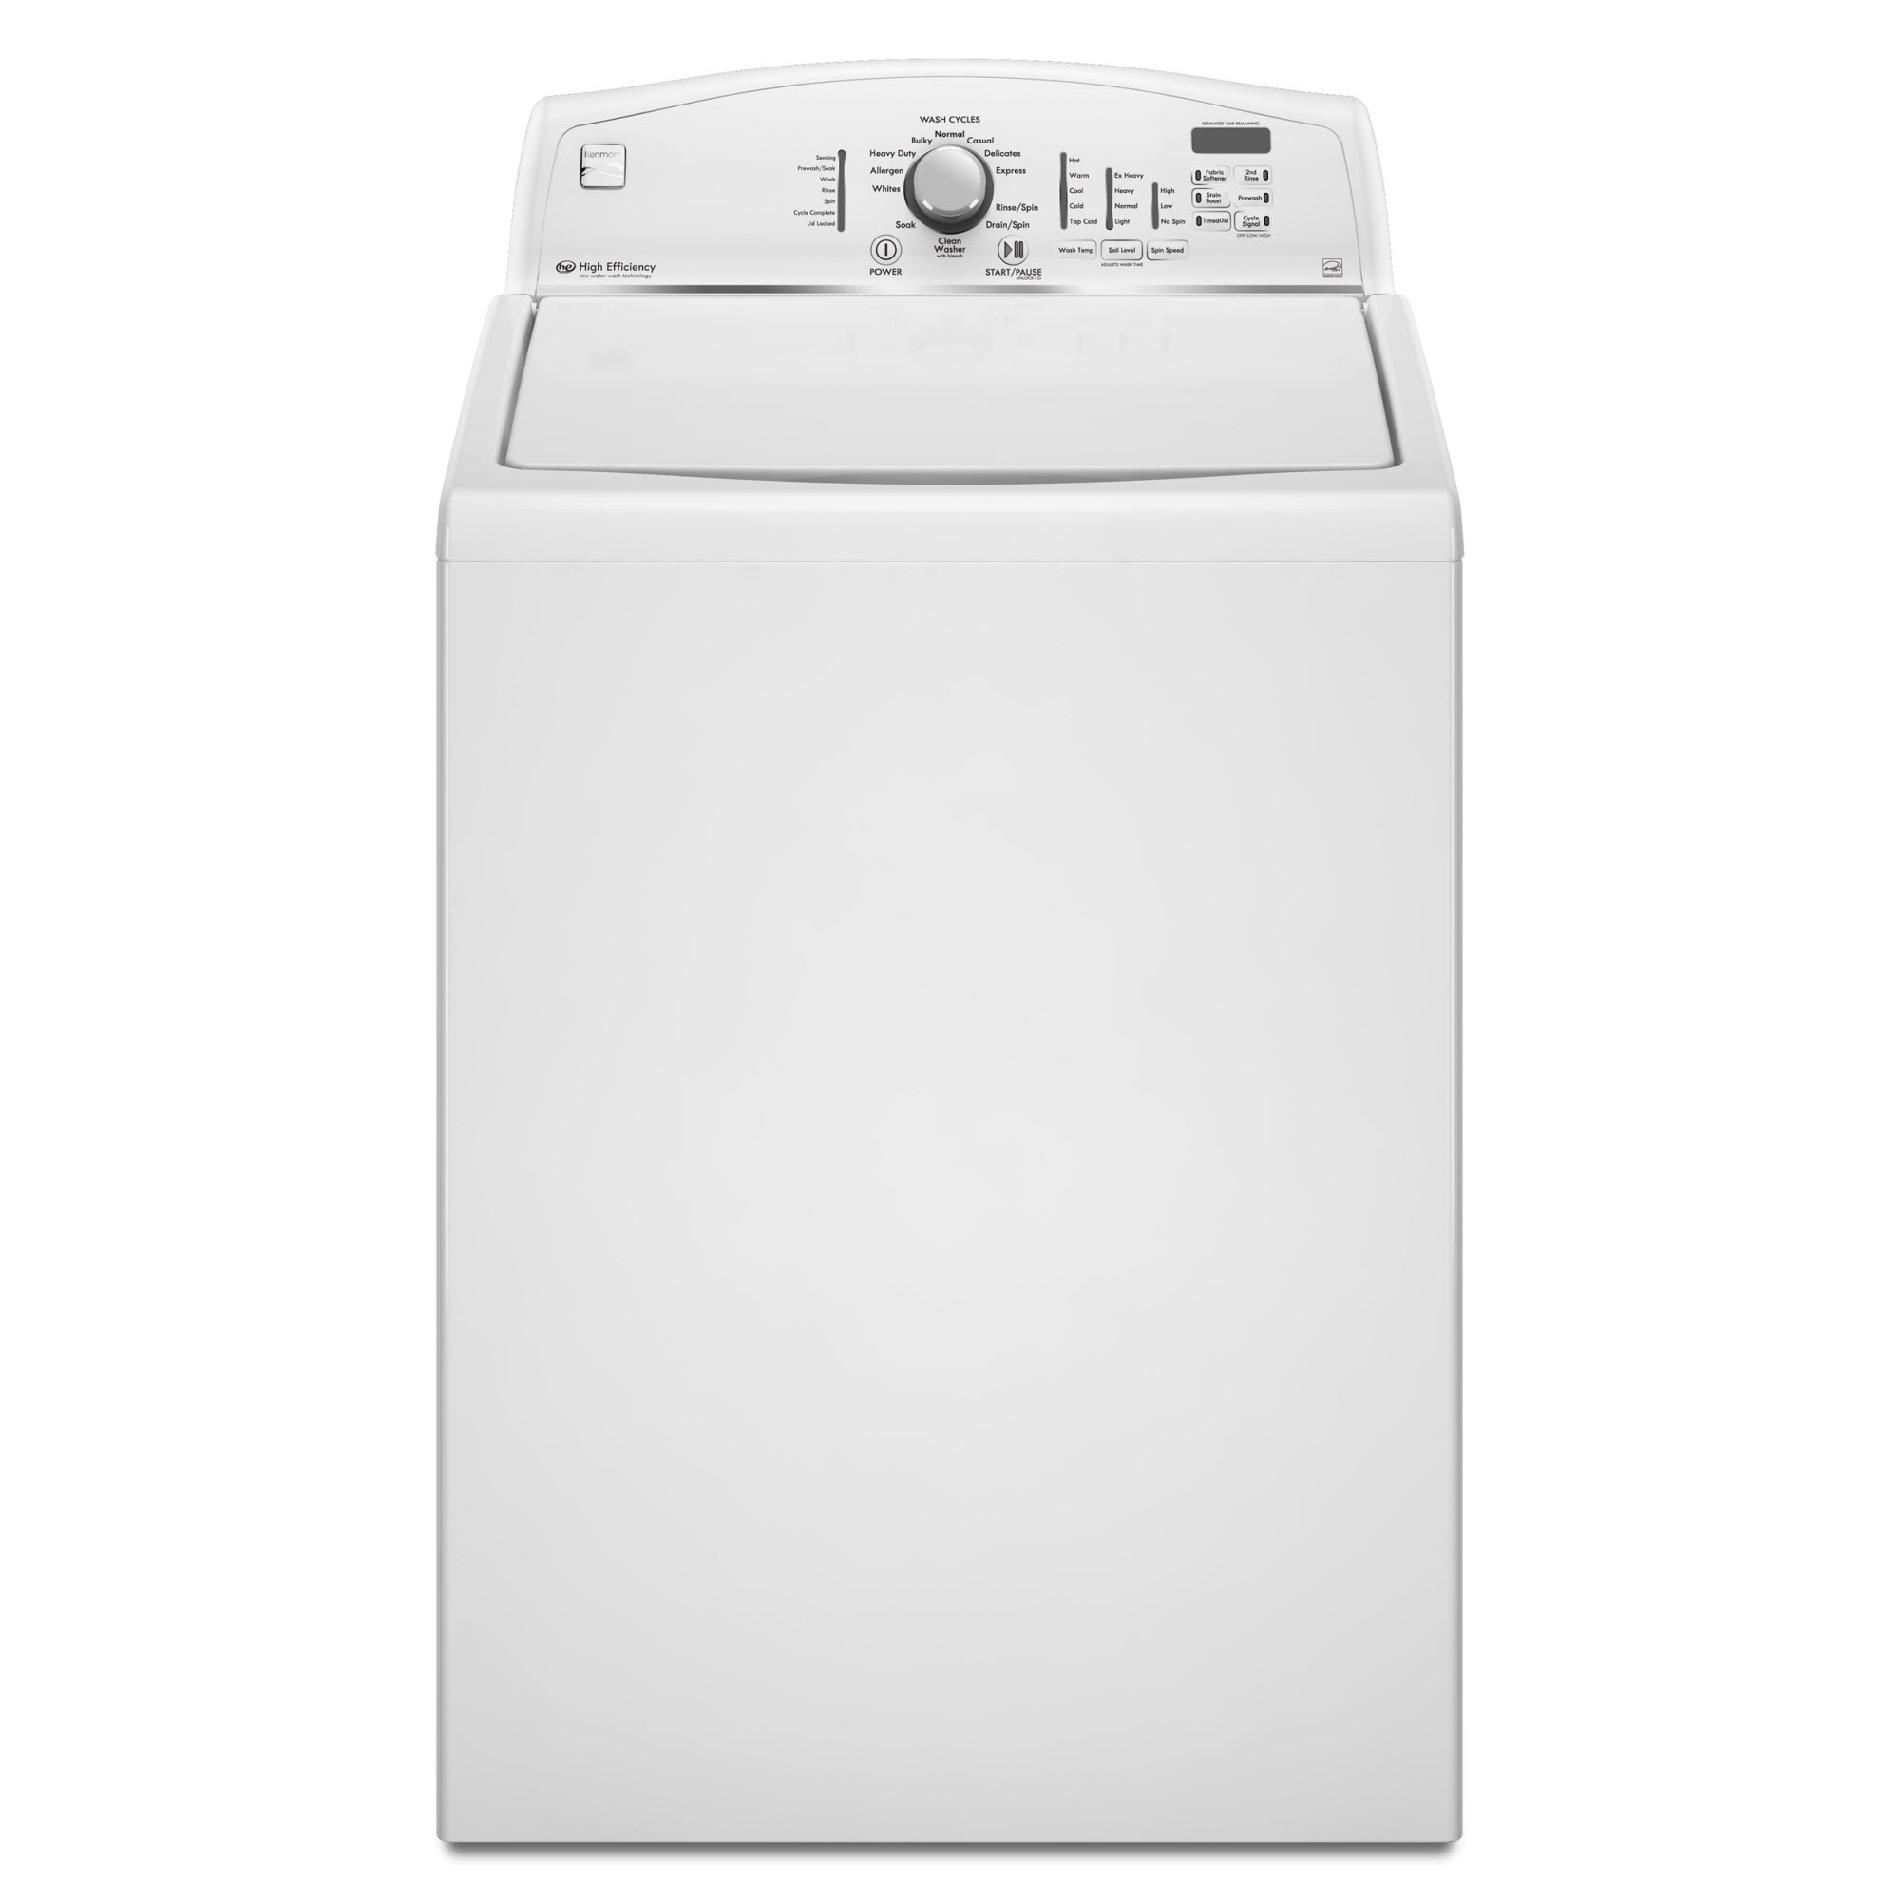 Kenmore 3.6 cu. ft. High-Efficiency Top-Load Washer                                                                                      Kenmore 3.6 cu. ft. High-Efficiency Top-Load Washer - White